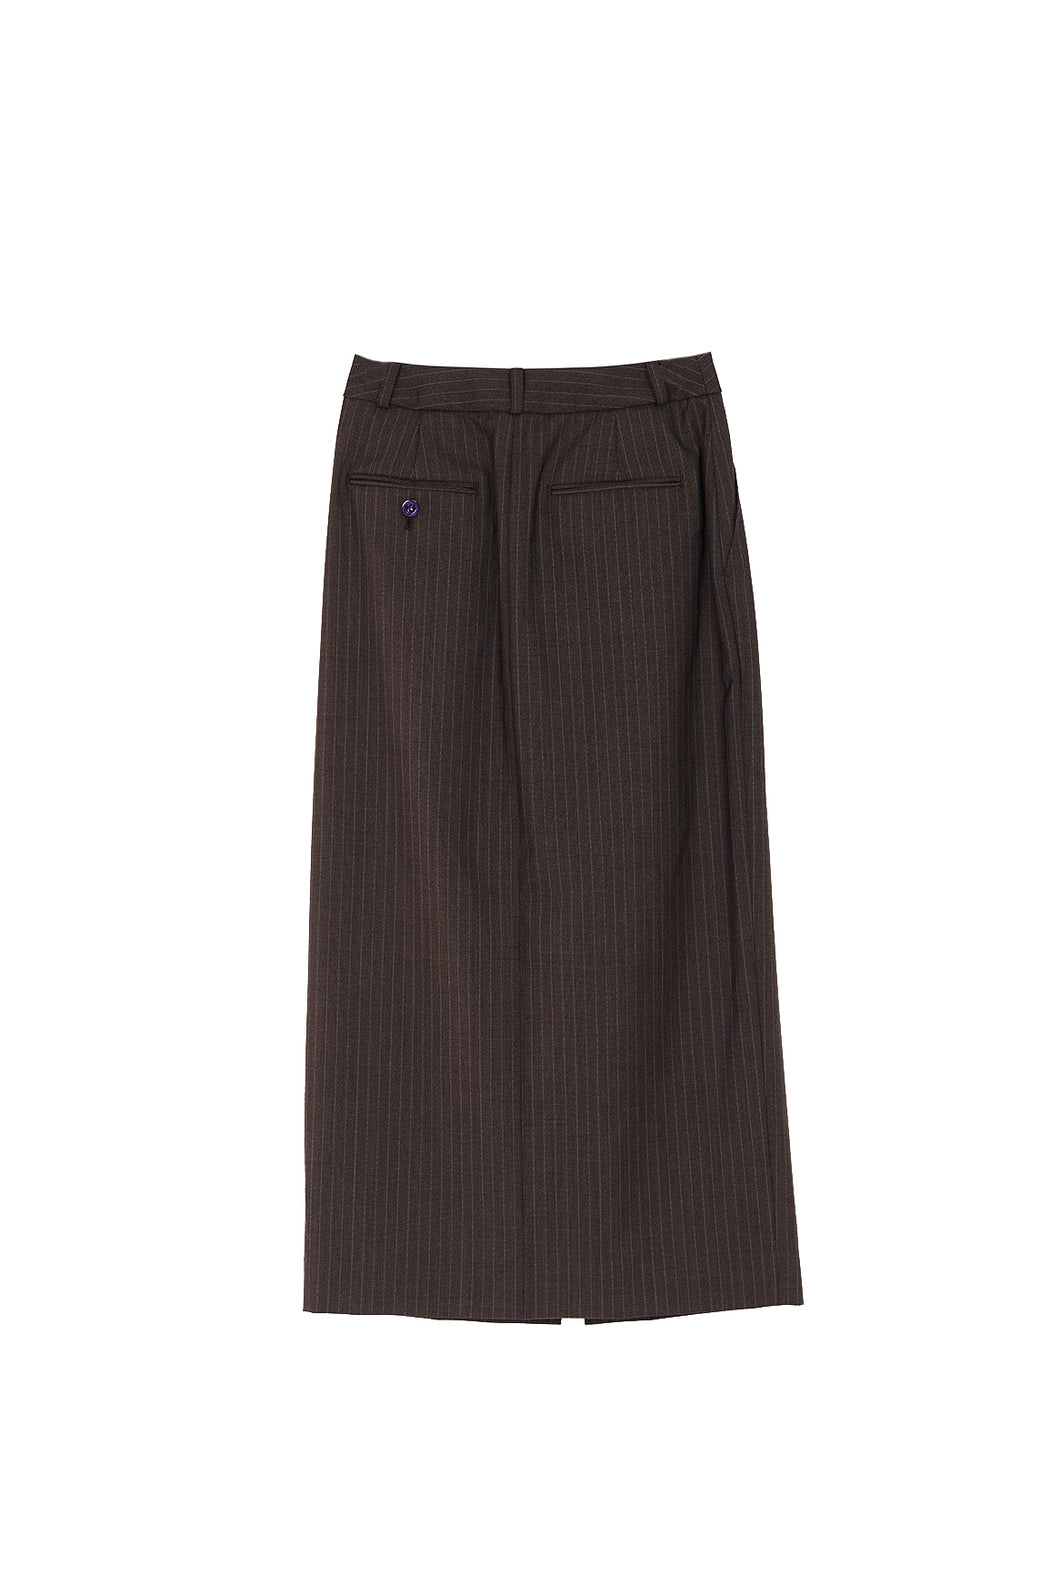 Tailored Skirt - Brown